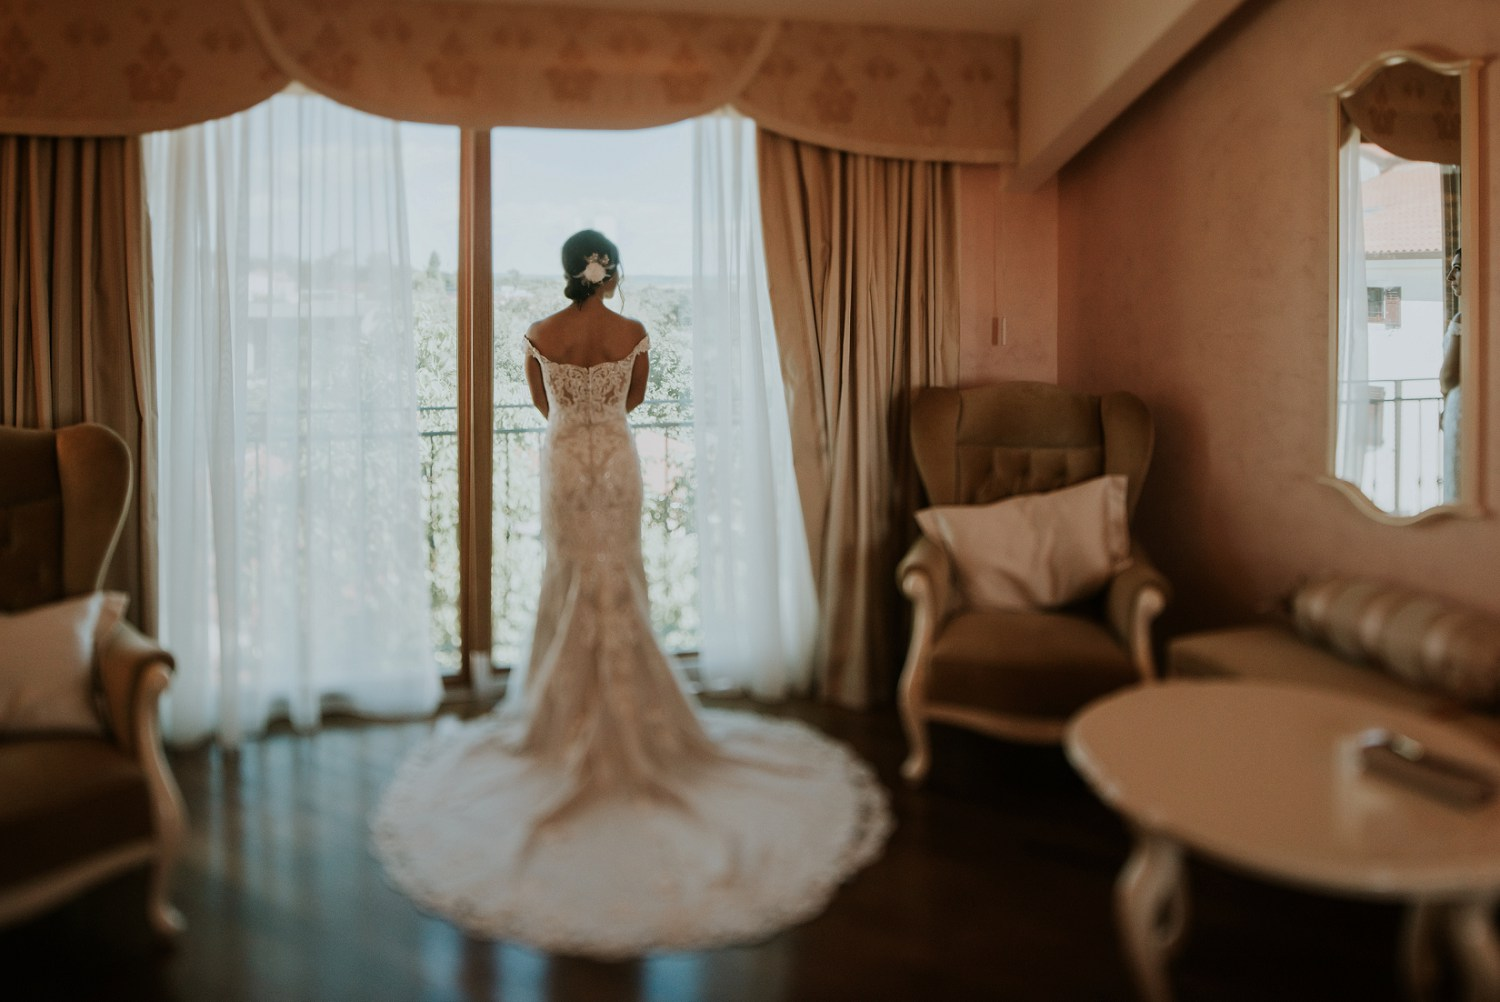 croatia-wedding-photographer-istria-sanrocco_0021.jpg